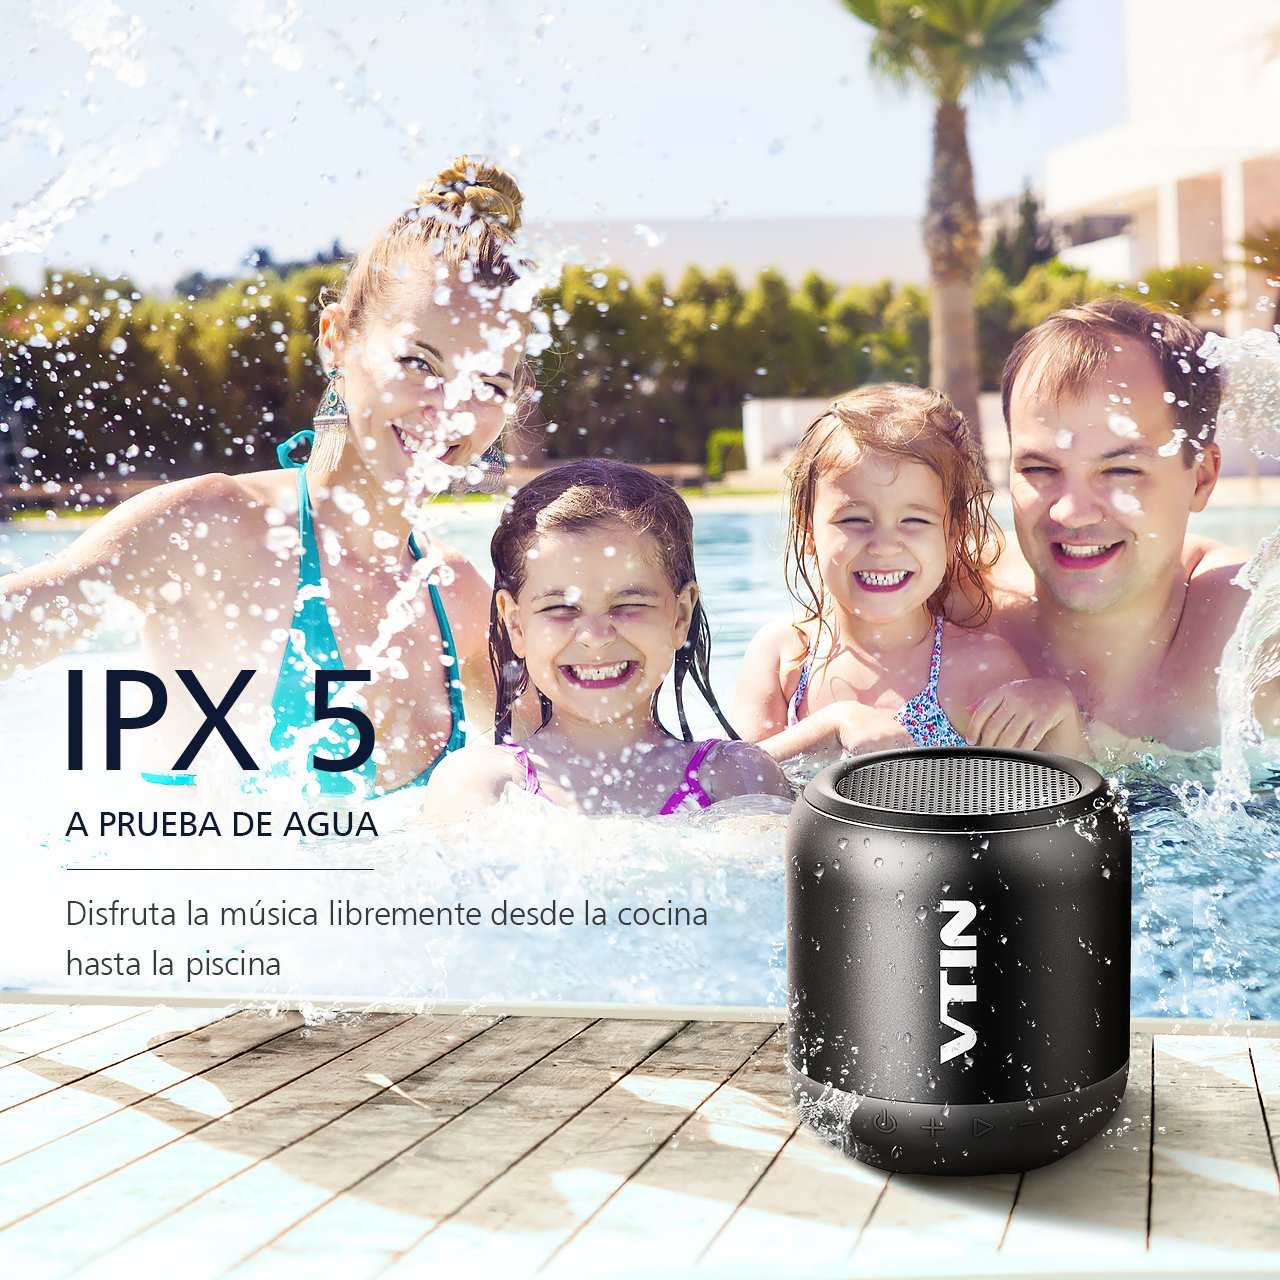 Amazon.com: Vtin IPX5 Altavoz Bluetooth Extra-Portatil Impermeable con Graves Mejorados: Electronics